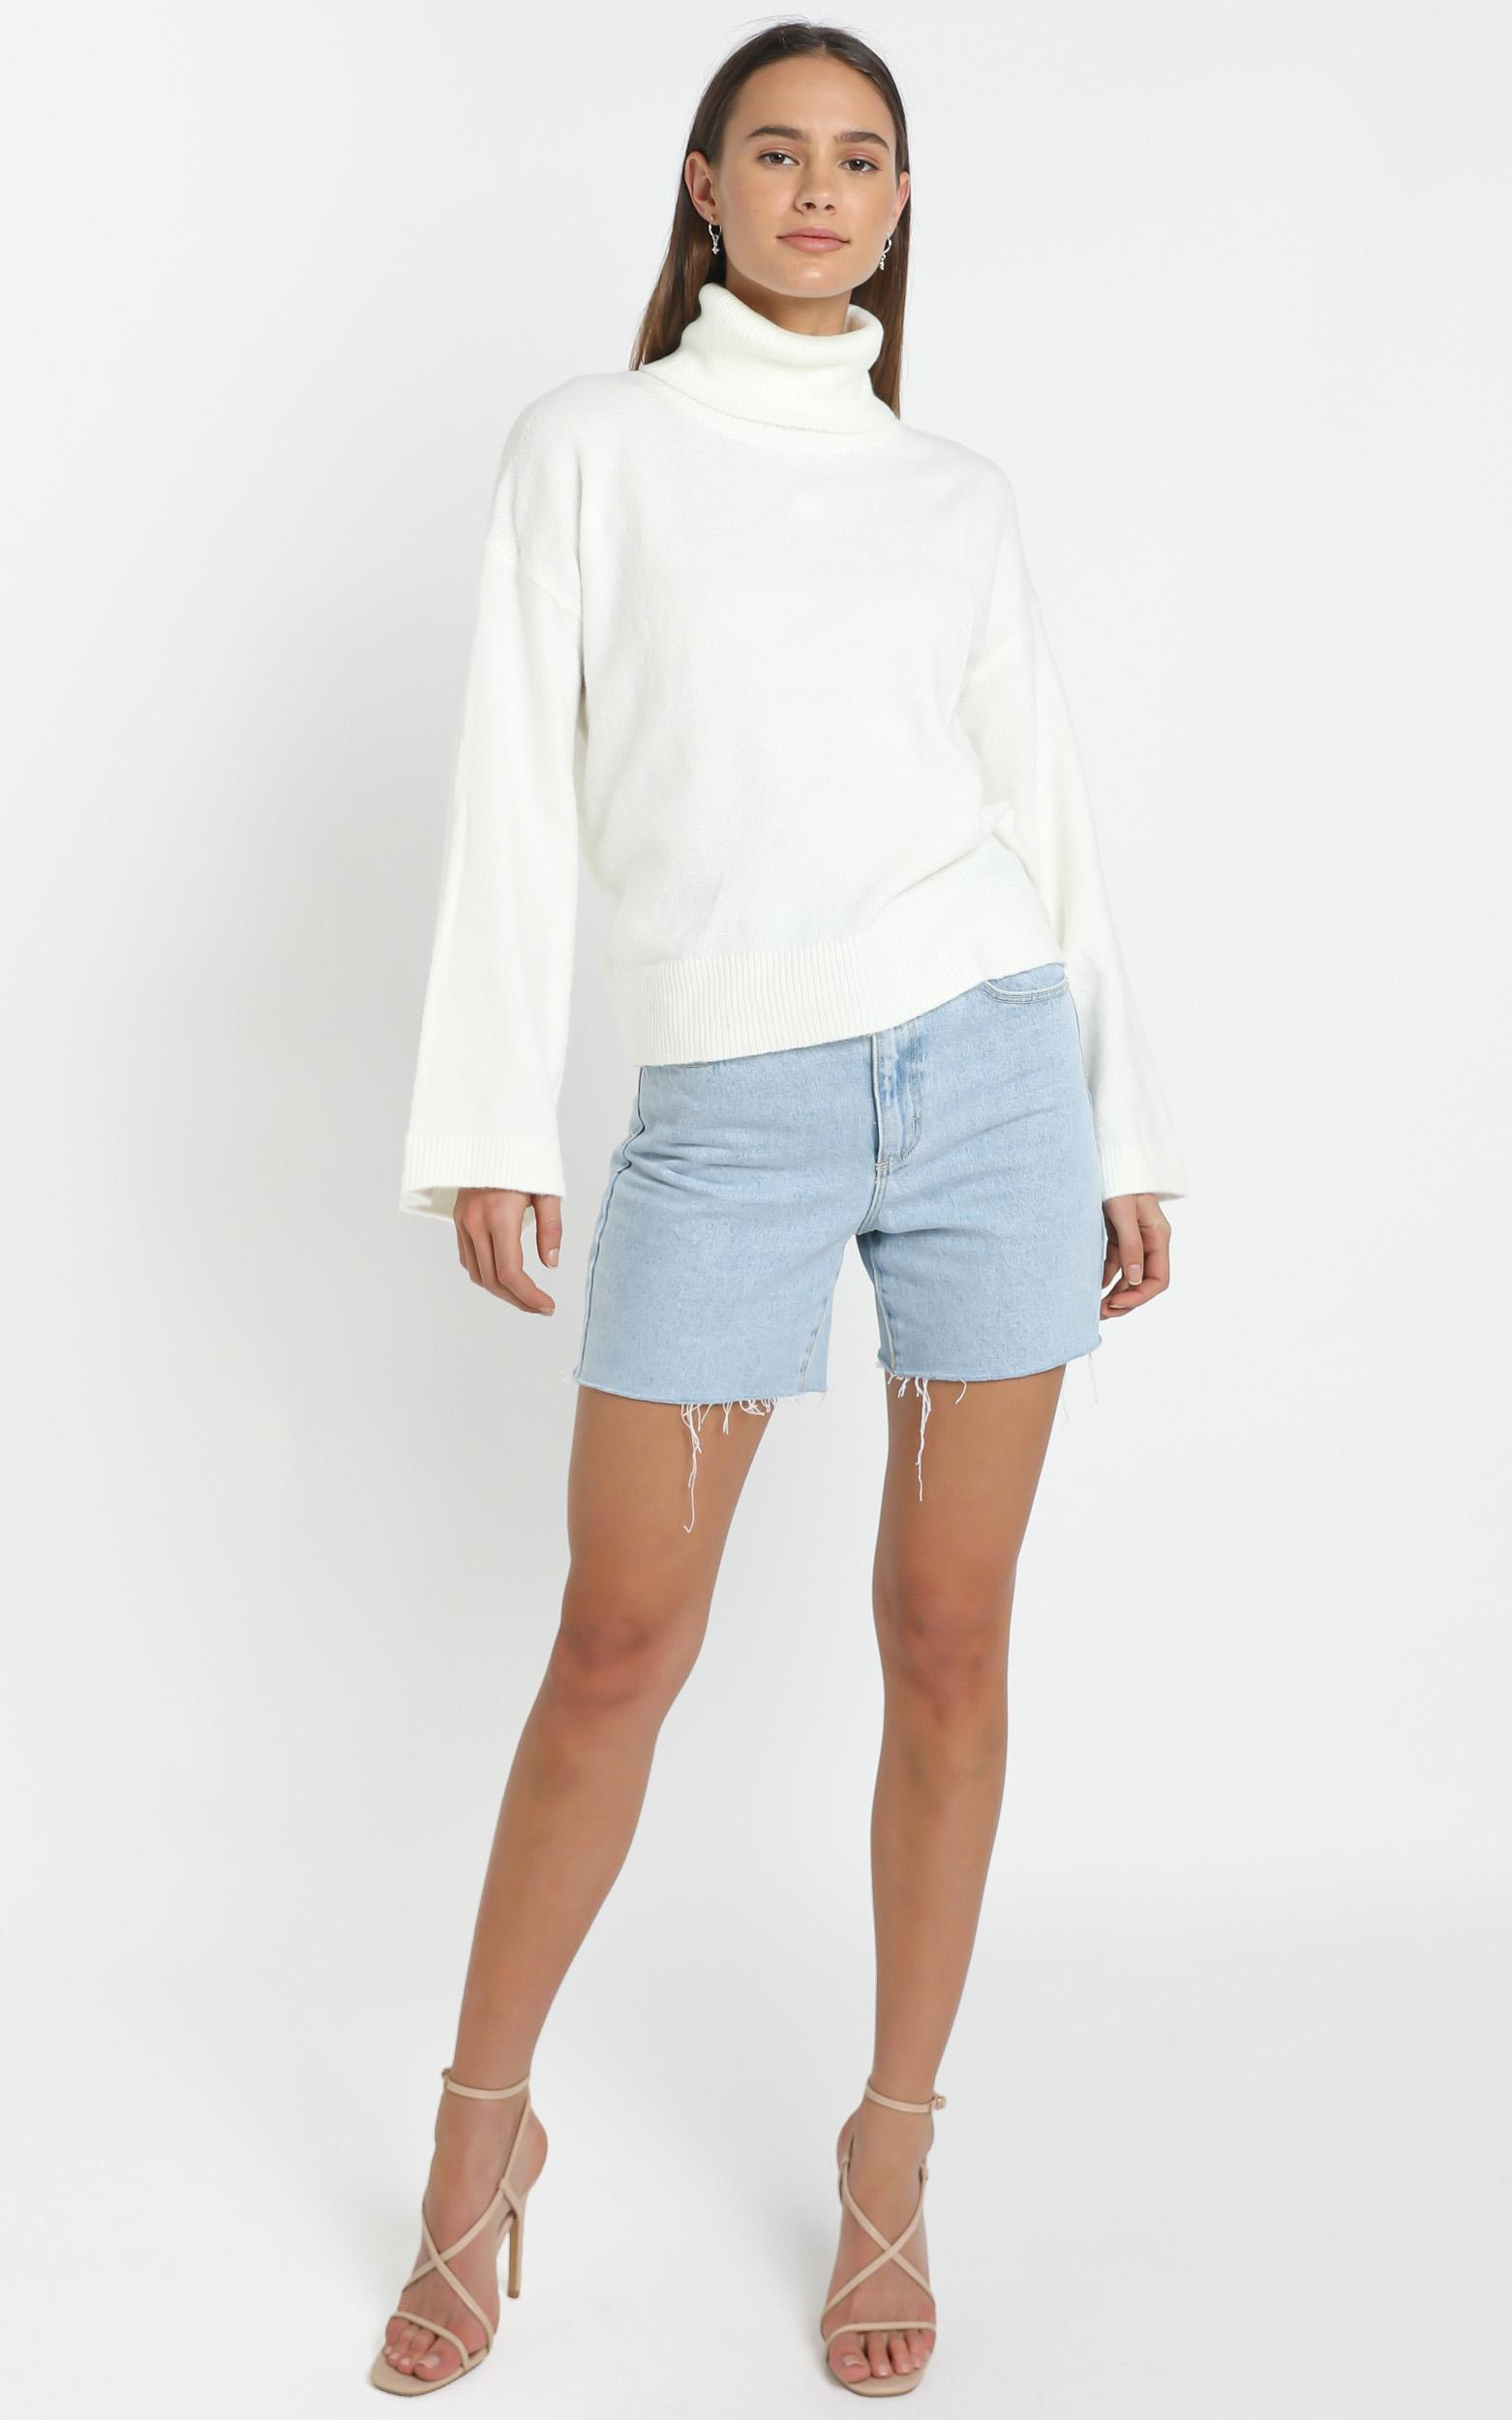 Ellery Knit in White - L/XL, White, hi-res image number null